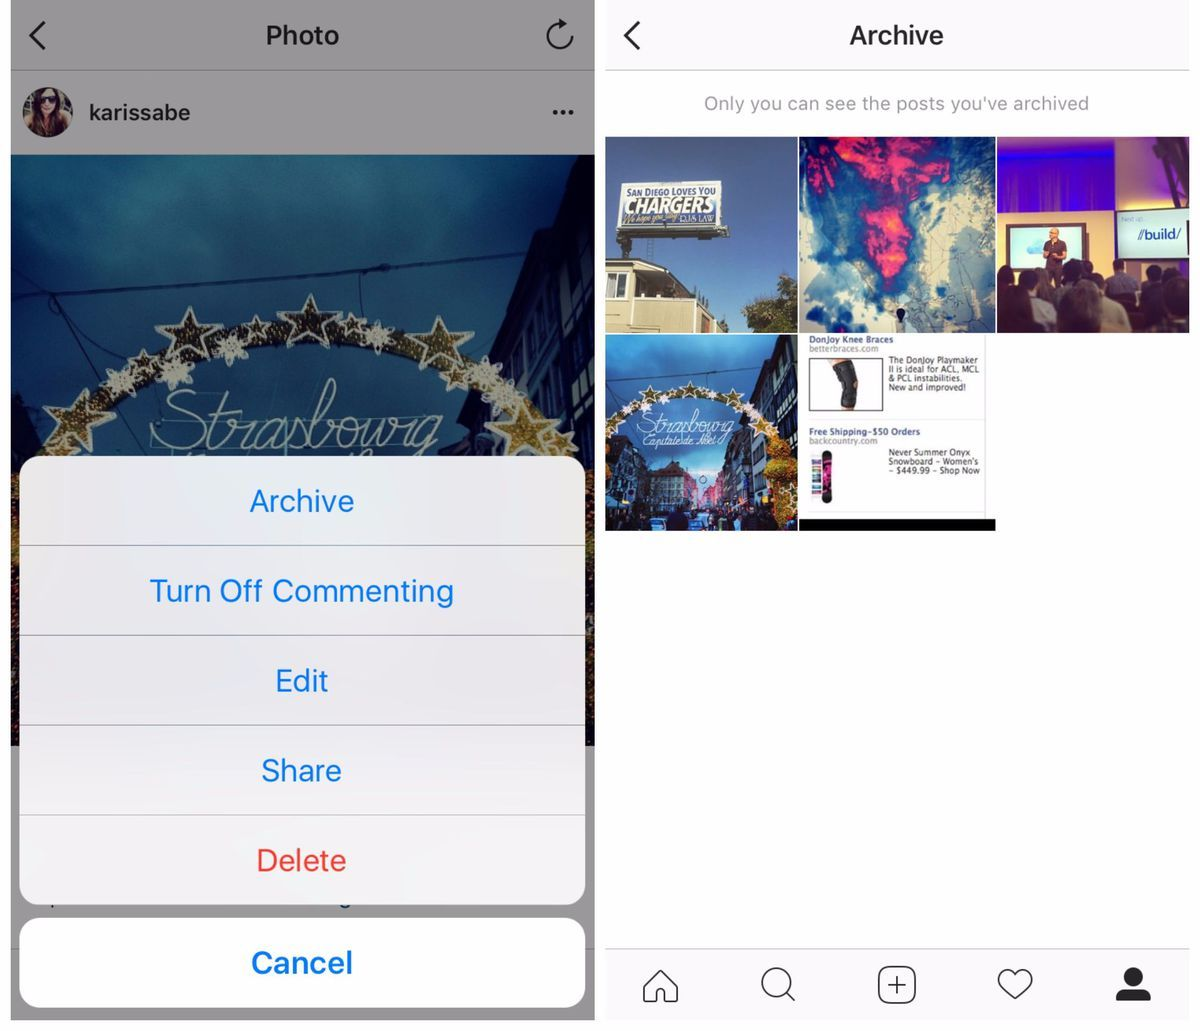 53d6da33c90f38b29da92df82b7a1c3a - How To Get An Instagram Post Out Of Archive